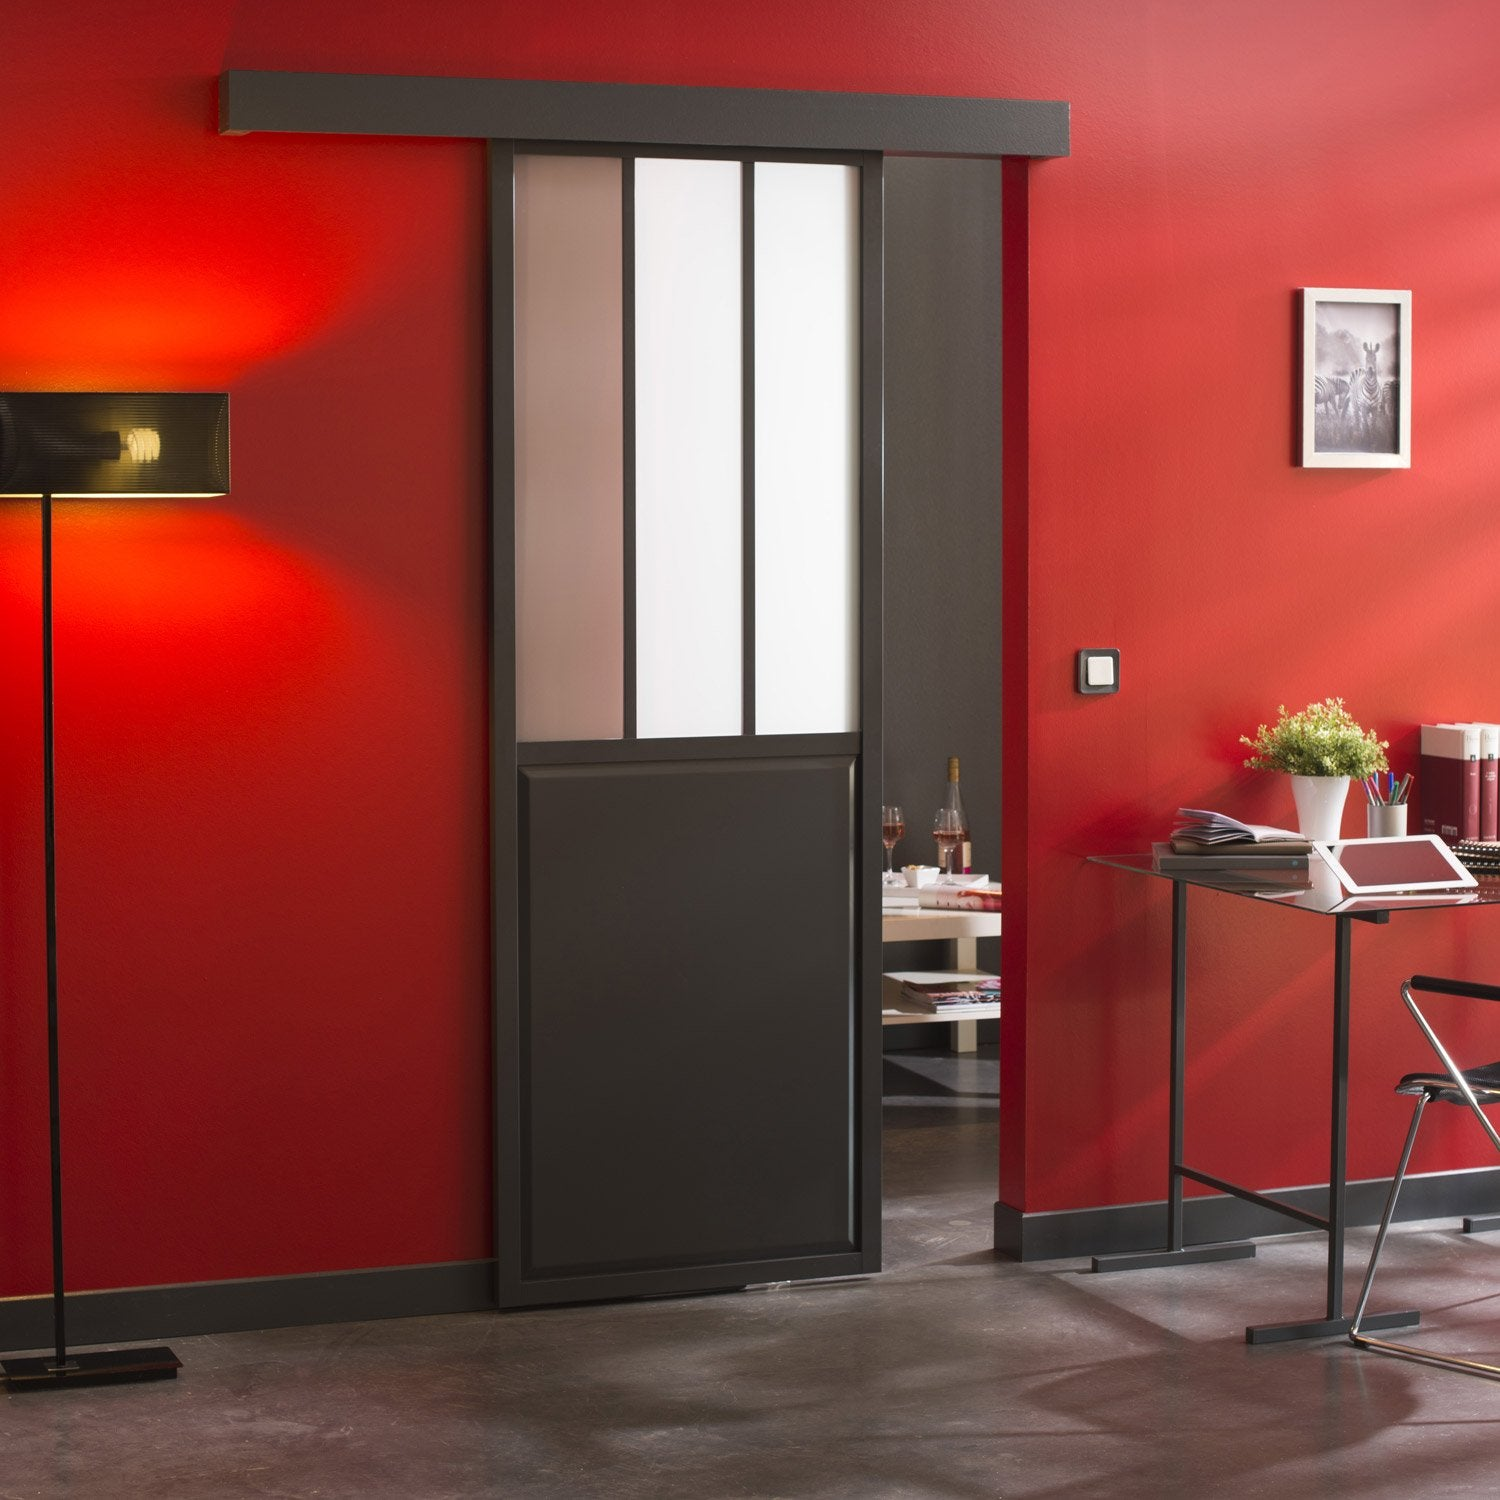 Ensemble porte coulissante atelier verre clair mdf rev tu for Leroy merlin portes coulissantes